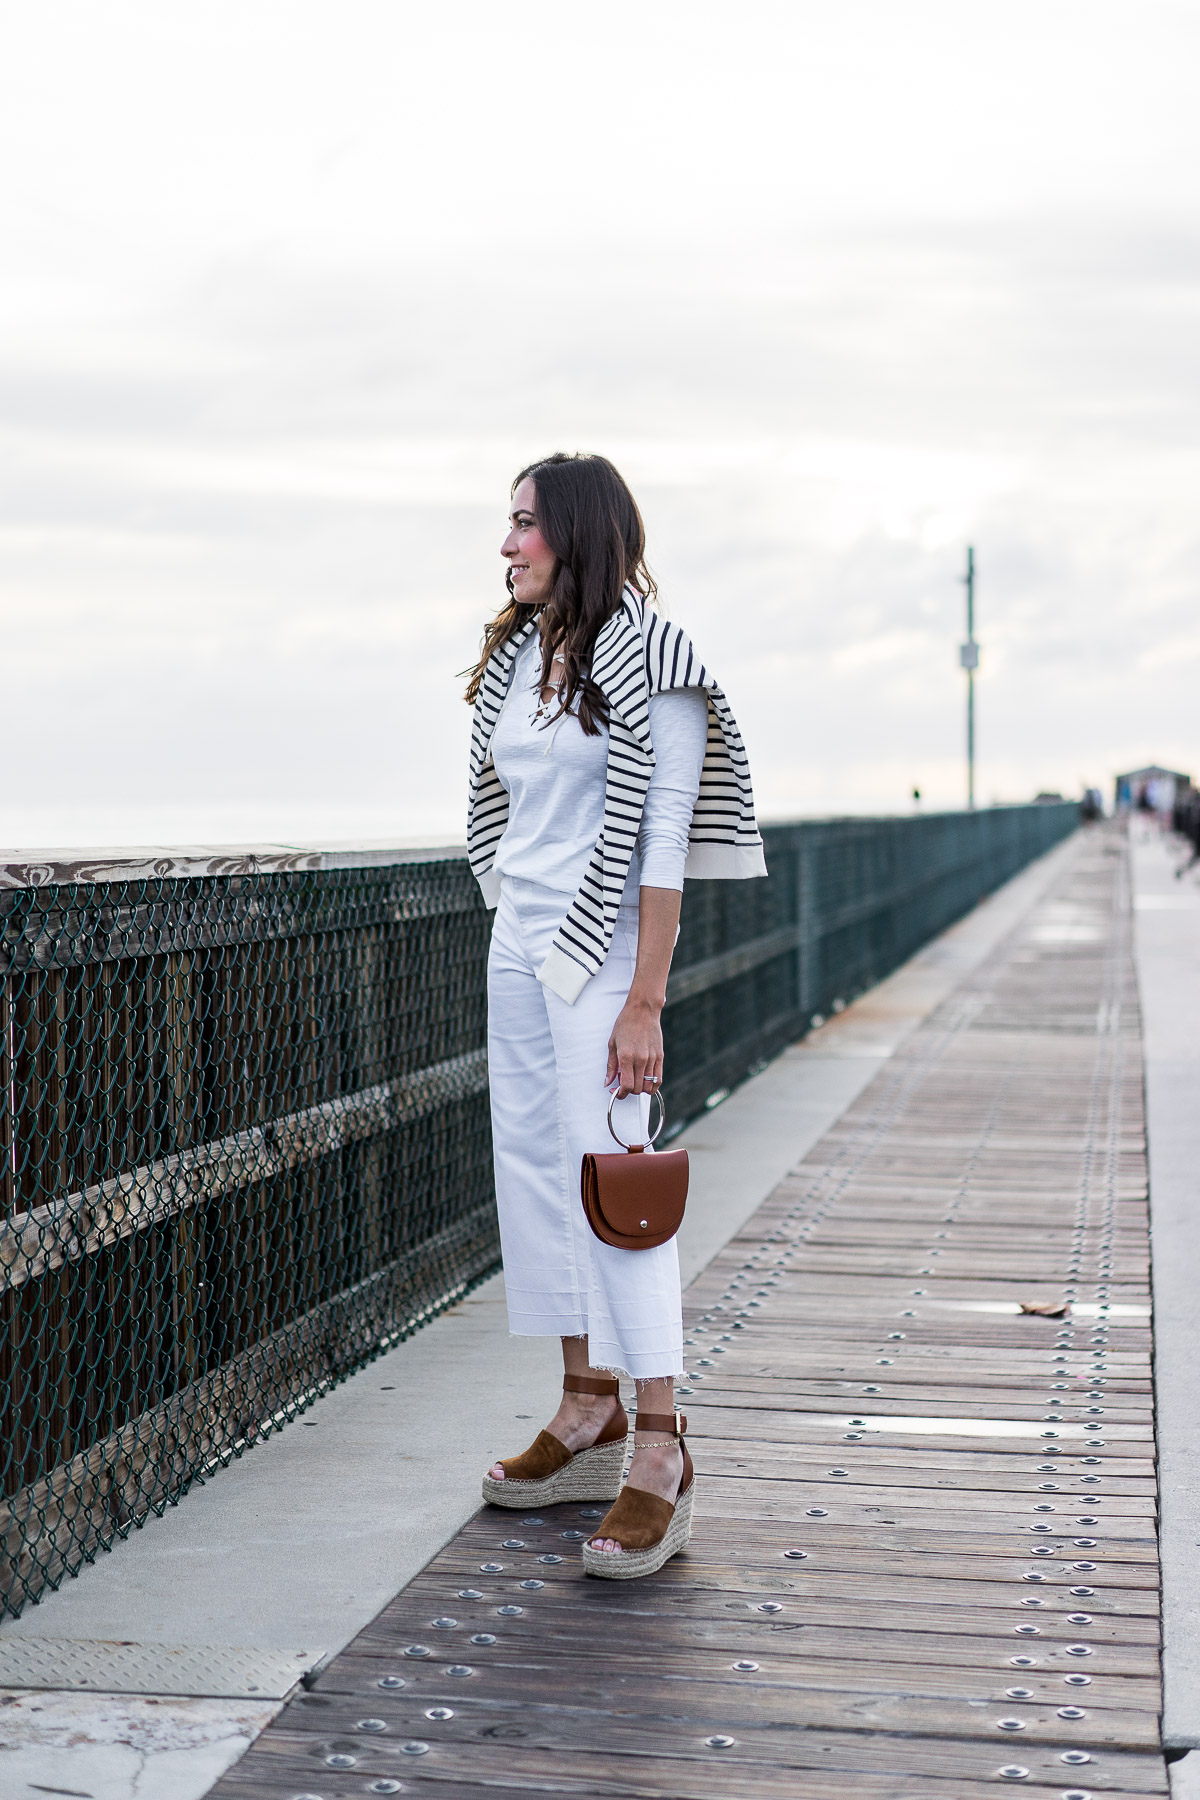 Old Navy lace up tee and Old Navy high waist white ankle jeans are styled by South Florida blogger Amanda of A Glam Lifestyle with Old Navy striped sweatshirt